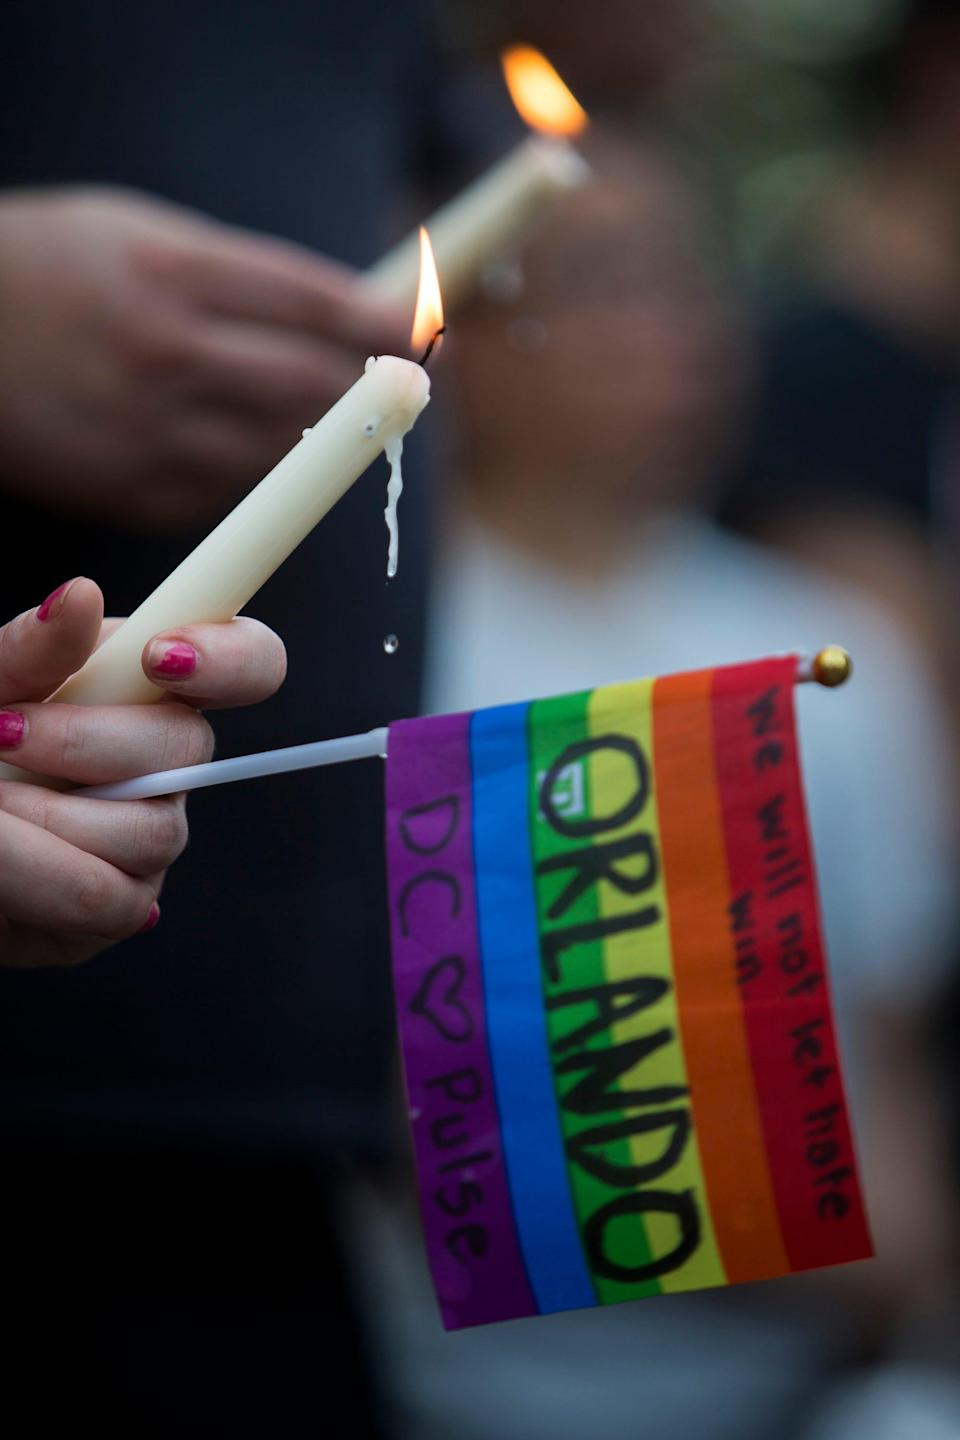 Nearly two years after the deadly Pulse nightclub shooting, survivors are suing police who responded and the city.